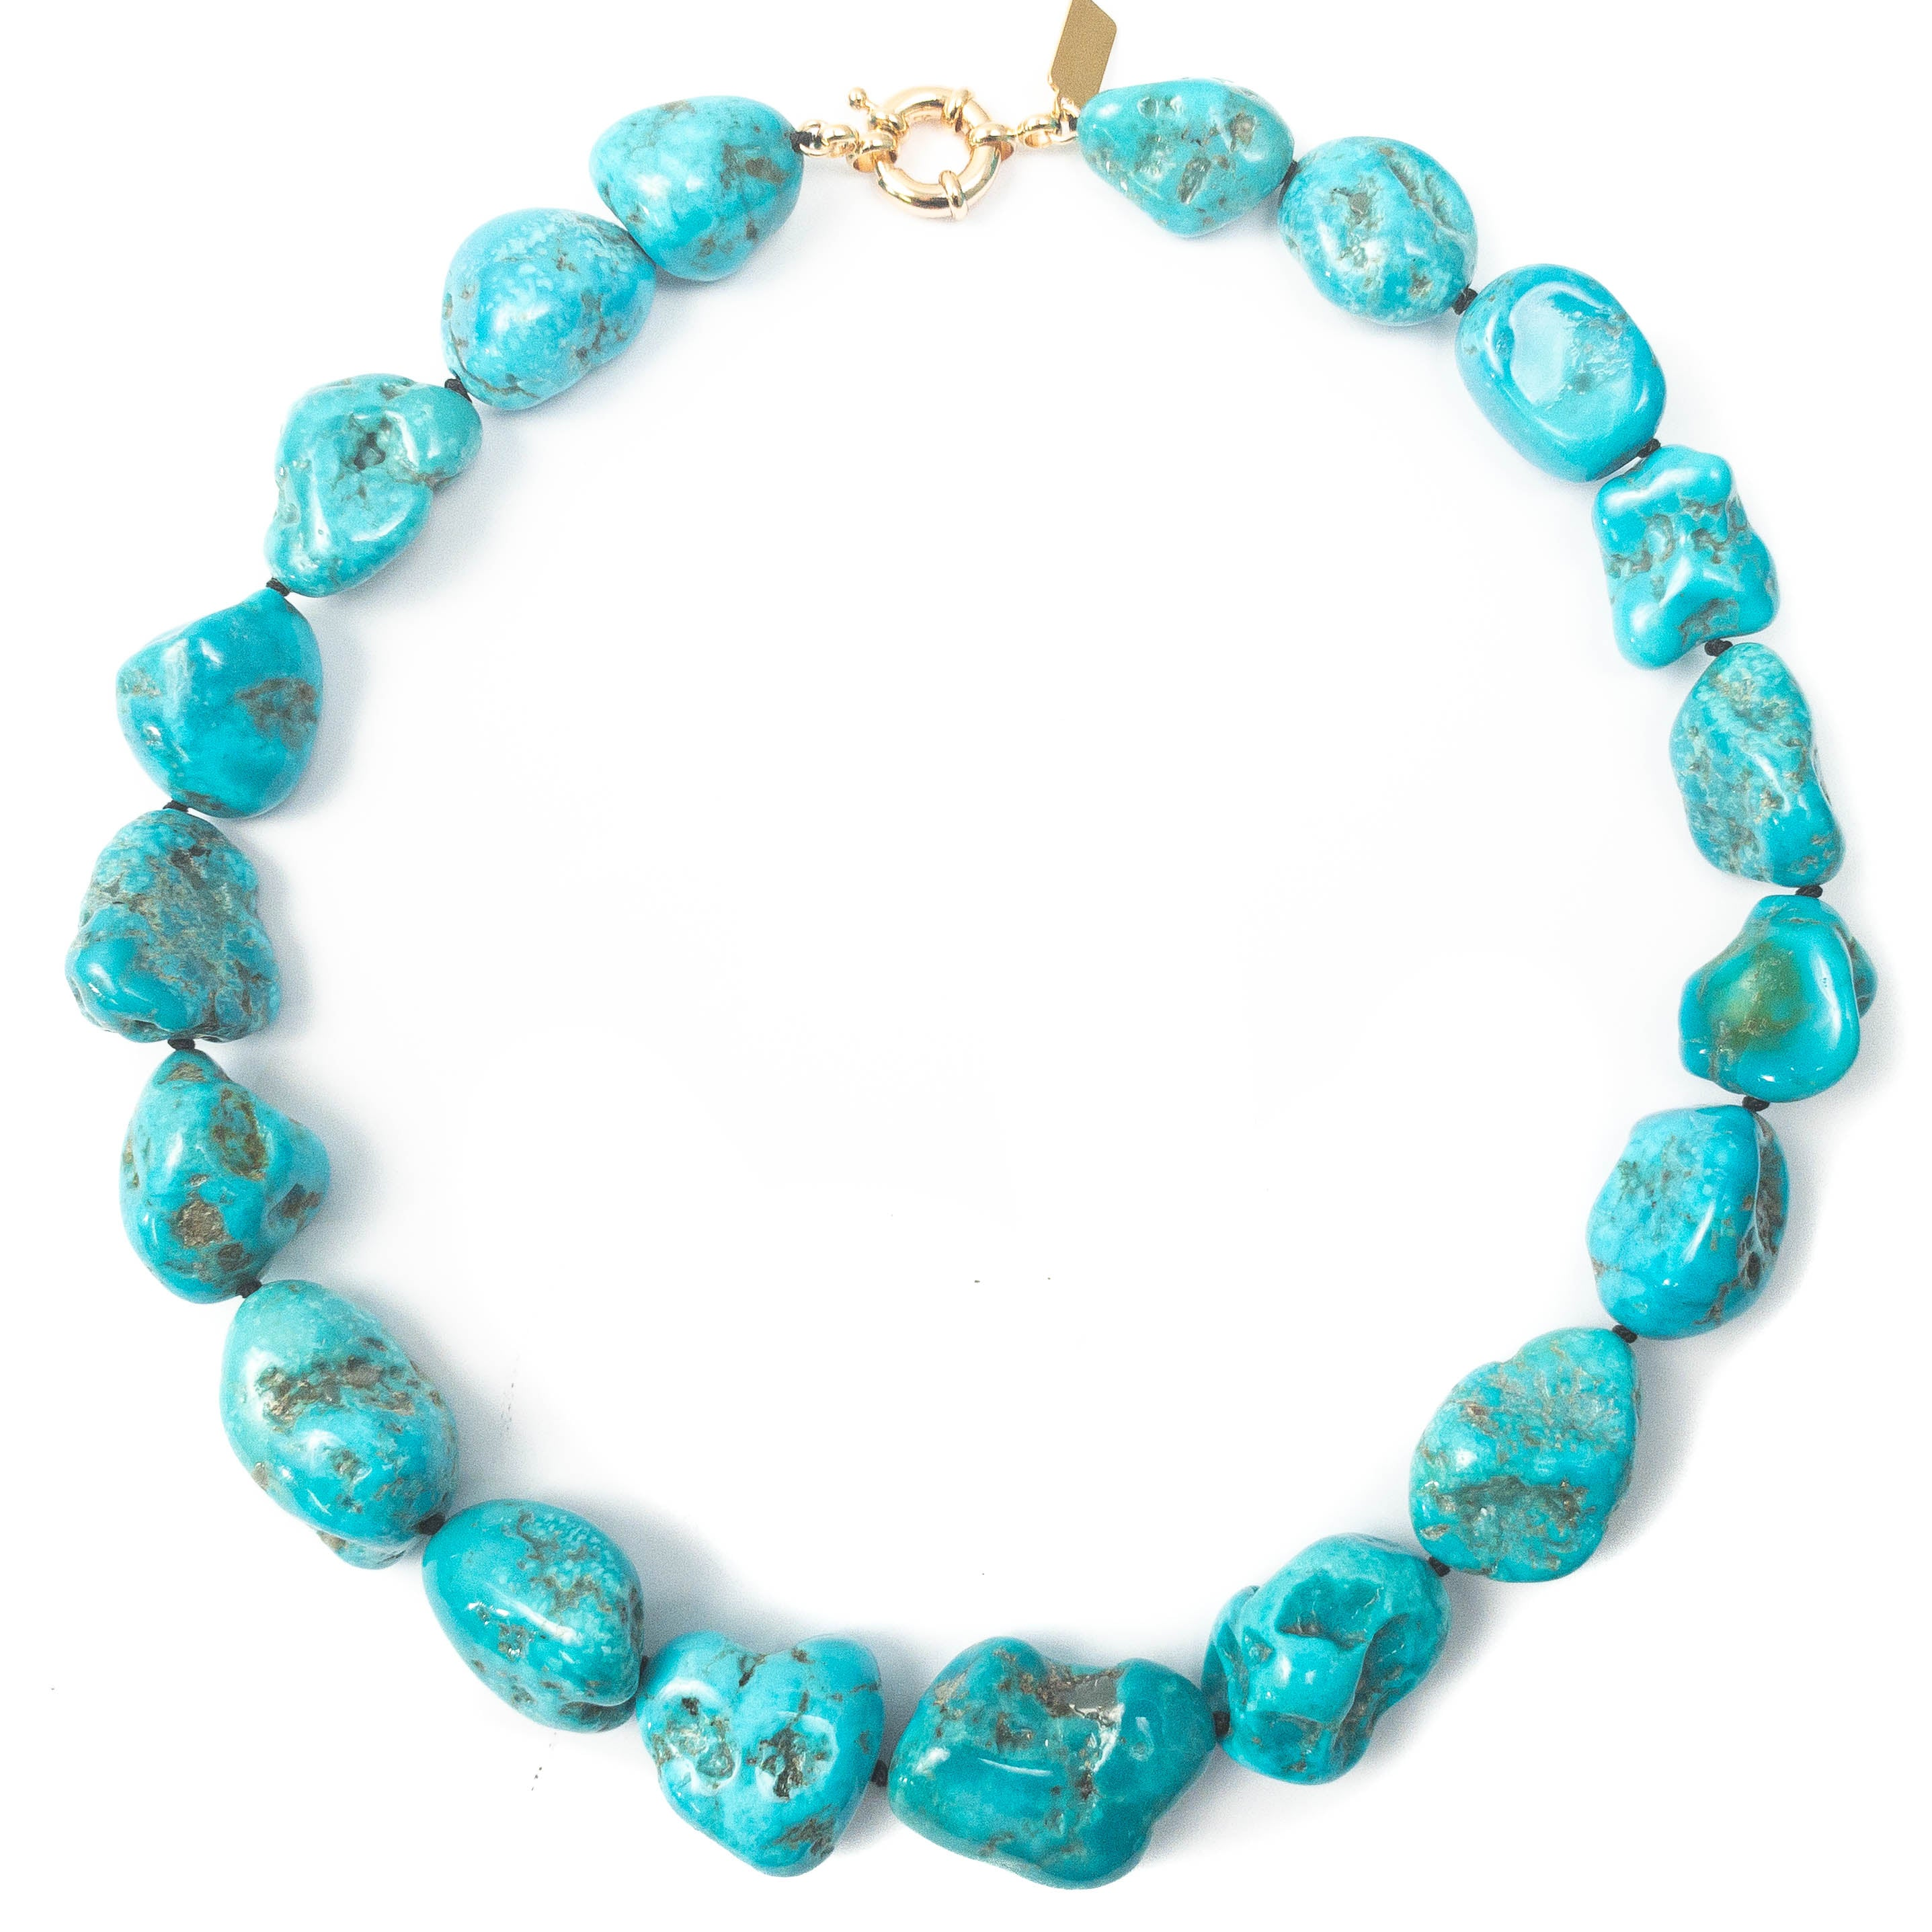 AAA Quality Undyed Sleeping Beauty Turquoise Nugget Necklace